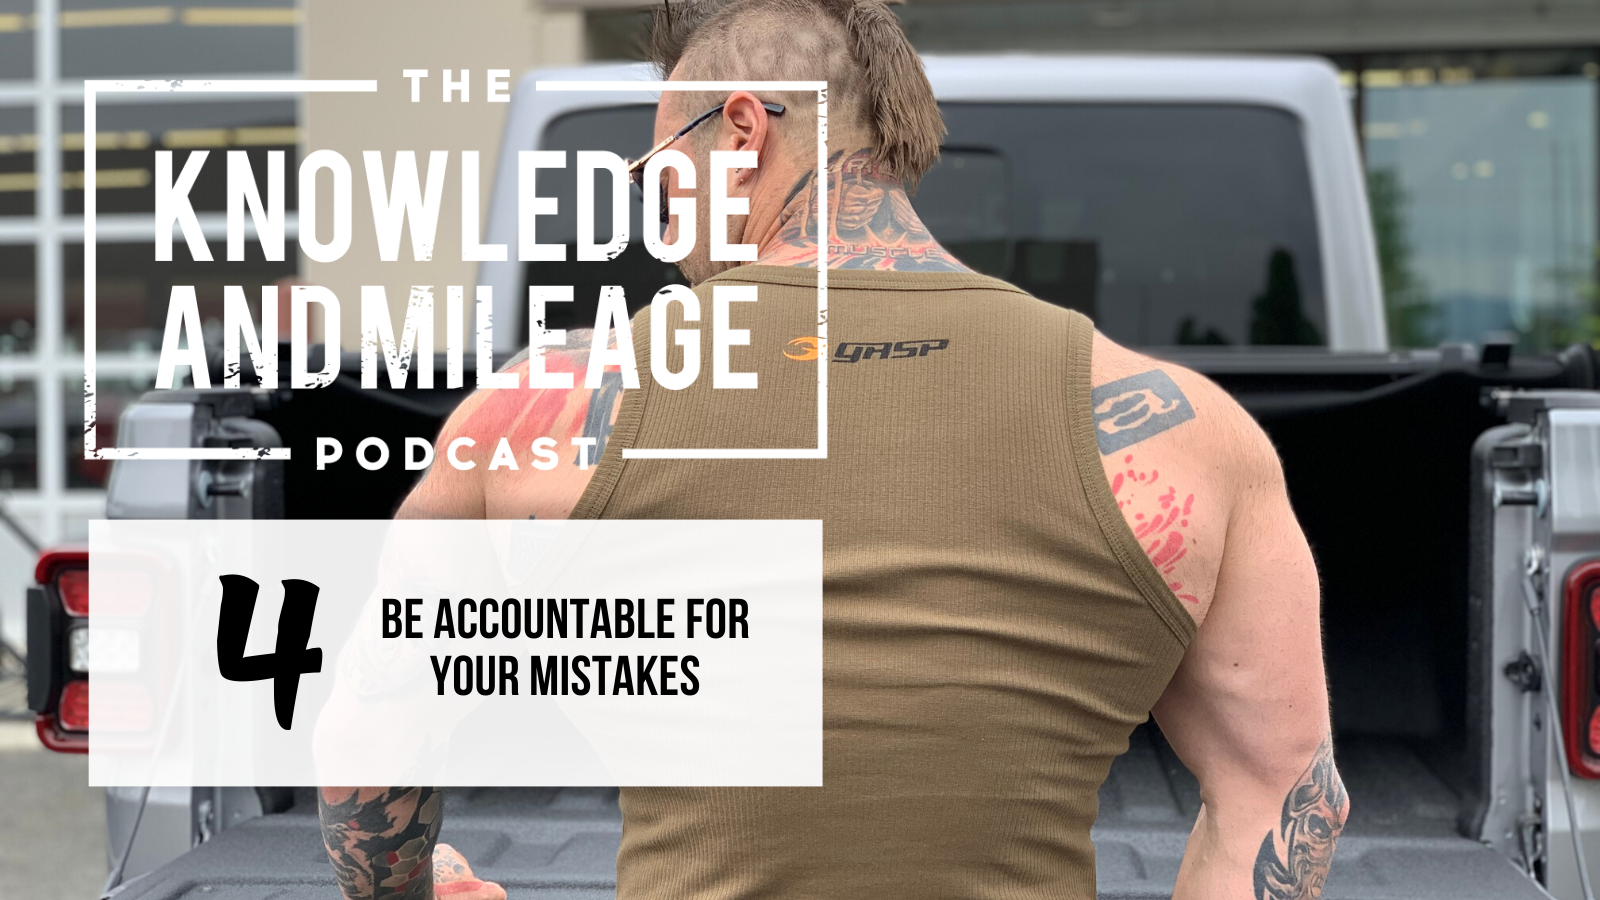 EP 4: Be Accountable for Your Mistakes: The 8 Week Hardcore Daily Video Trainer Reboot Series